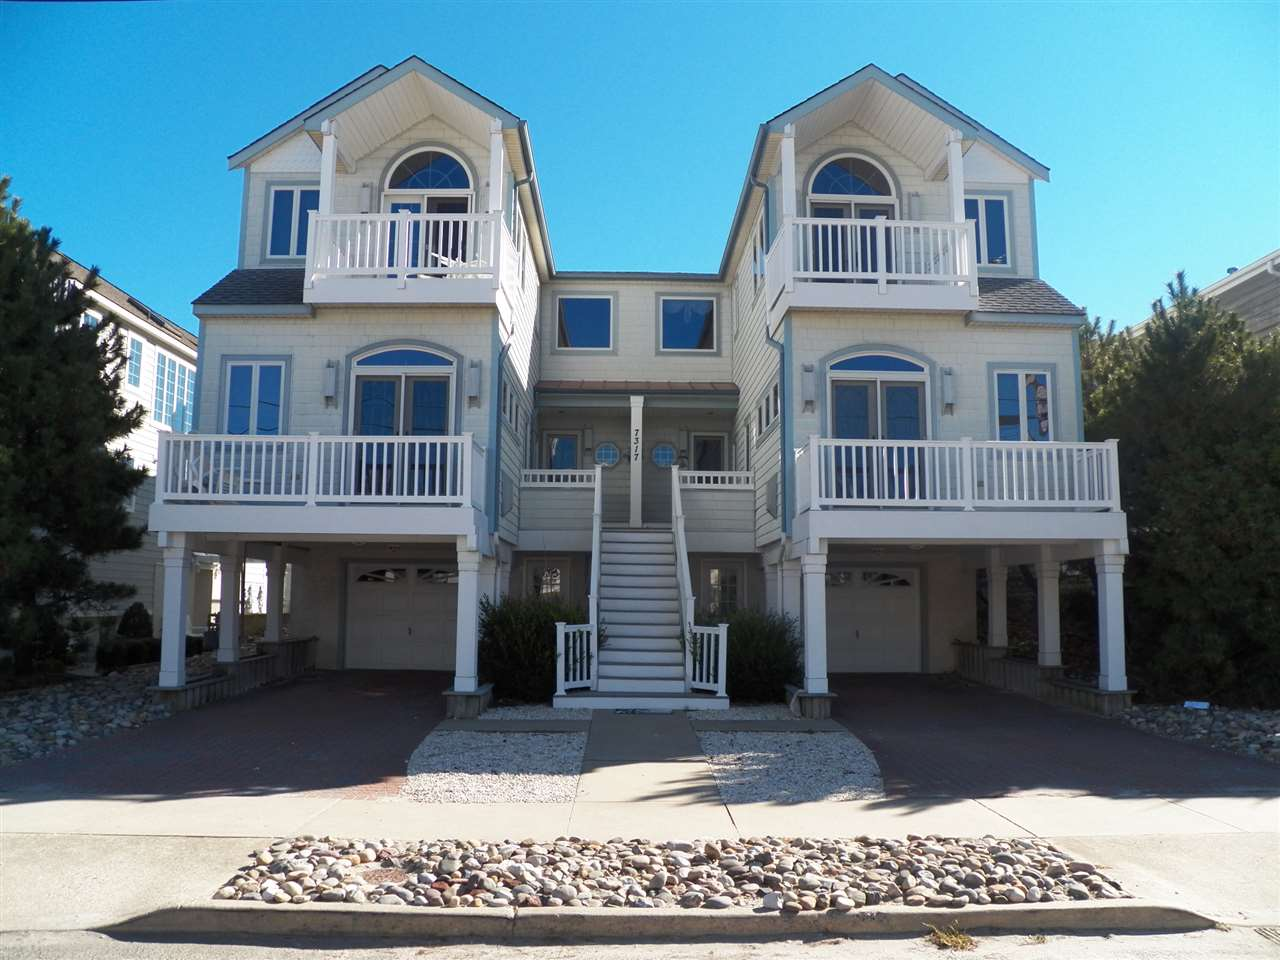 7317 Pleasure Ave. North, Sea Isle City, NJ 08243